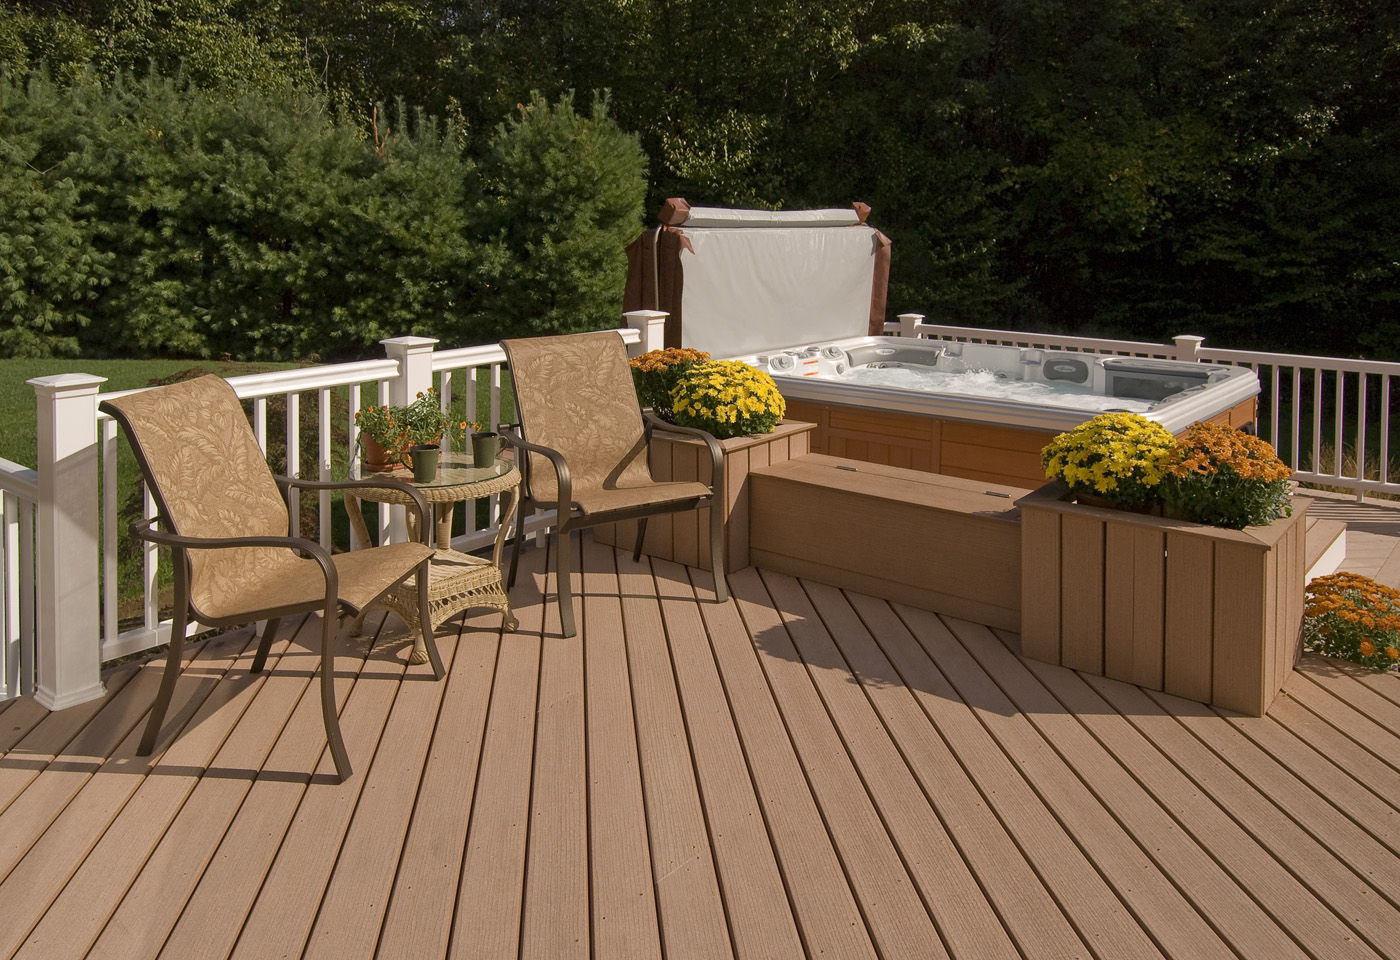 7 simple features to instantly improve a deck st louis. Black Bedroom Furniture Sets. Home Design Ideas